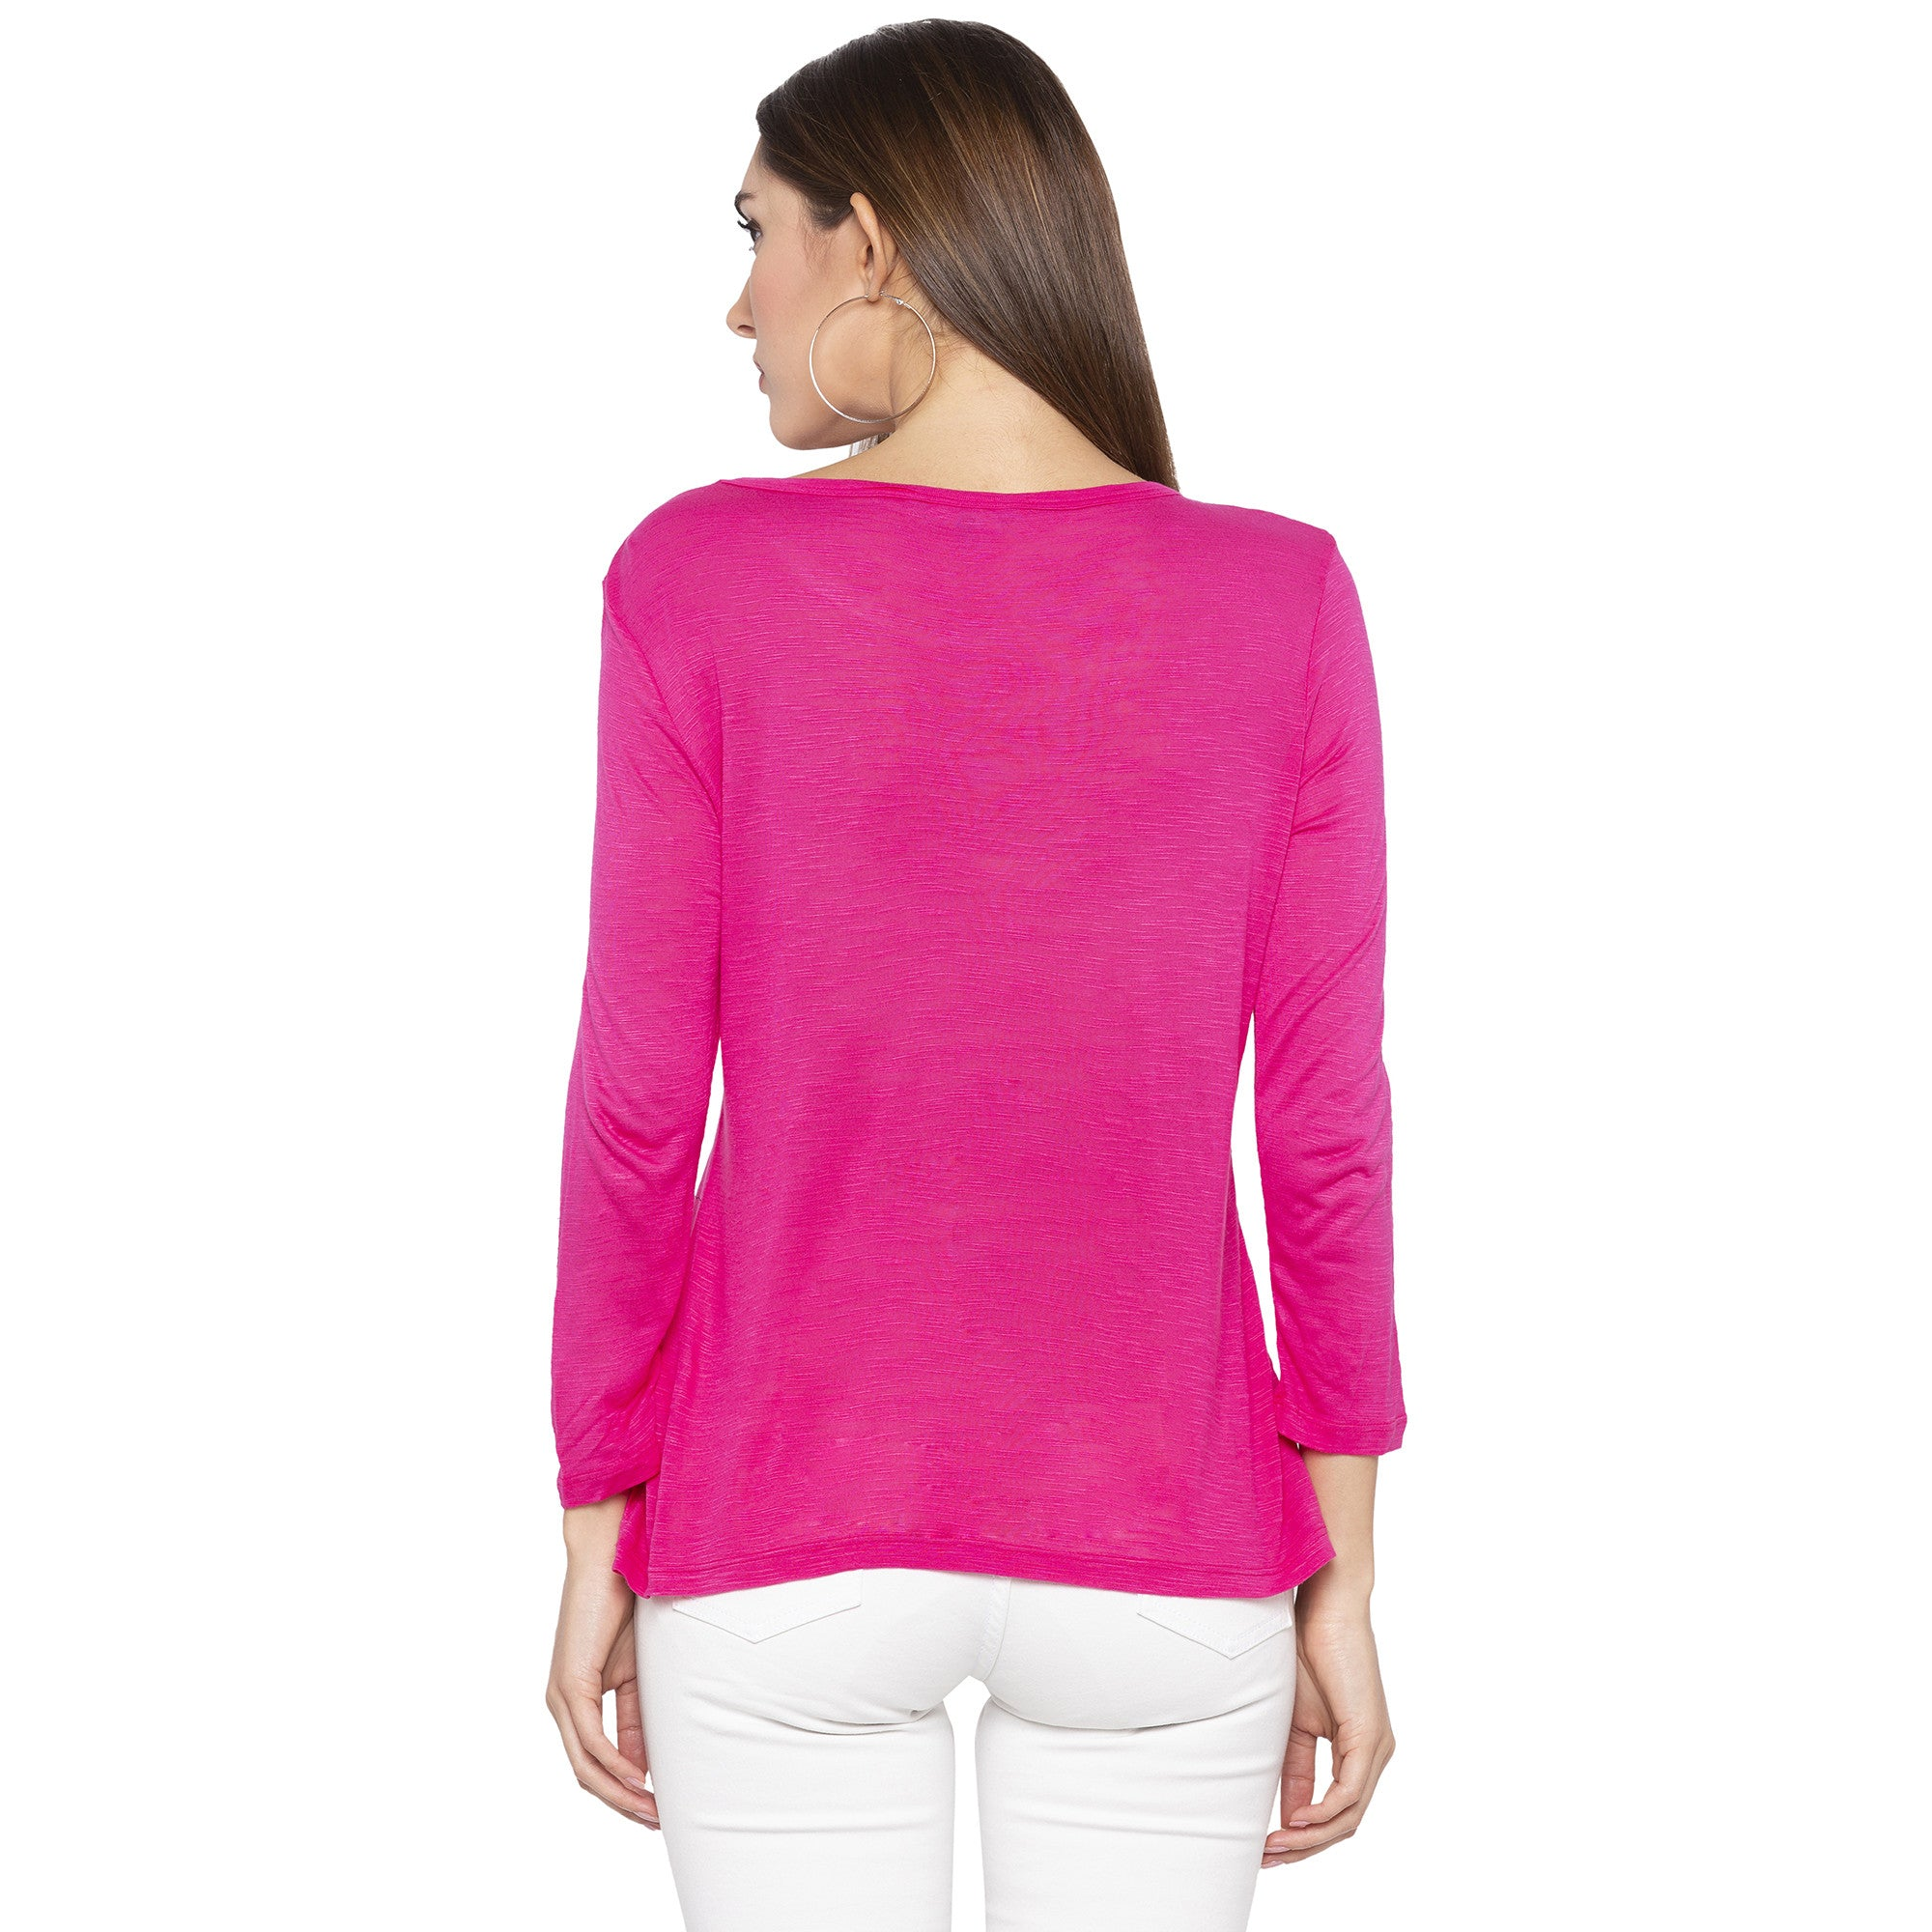 Casual Pink Color Solid Regular Fit Tops-3